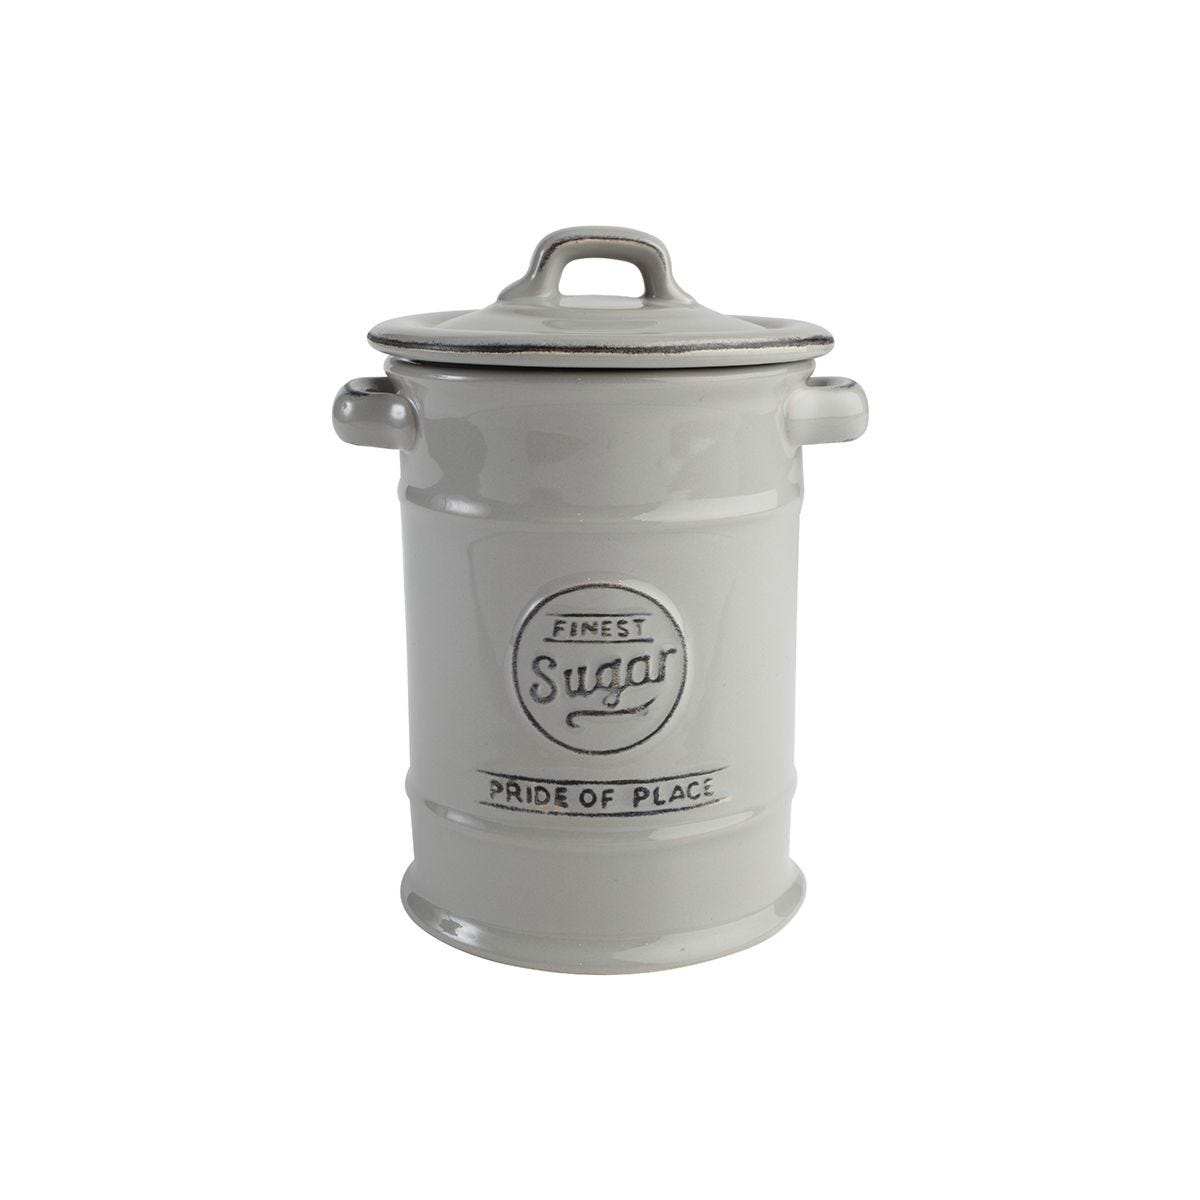 T&G Pride of Place Sugar Canister - Cool grey